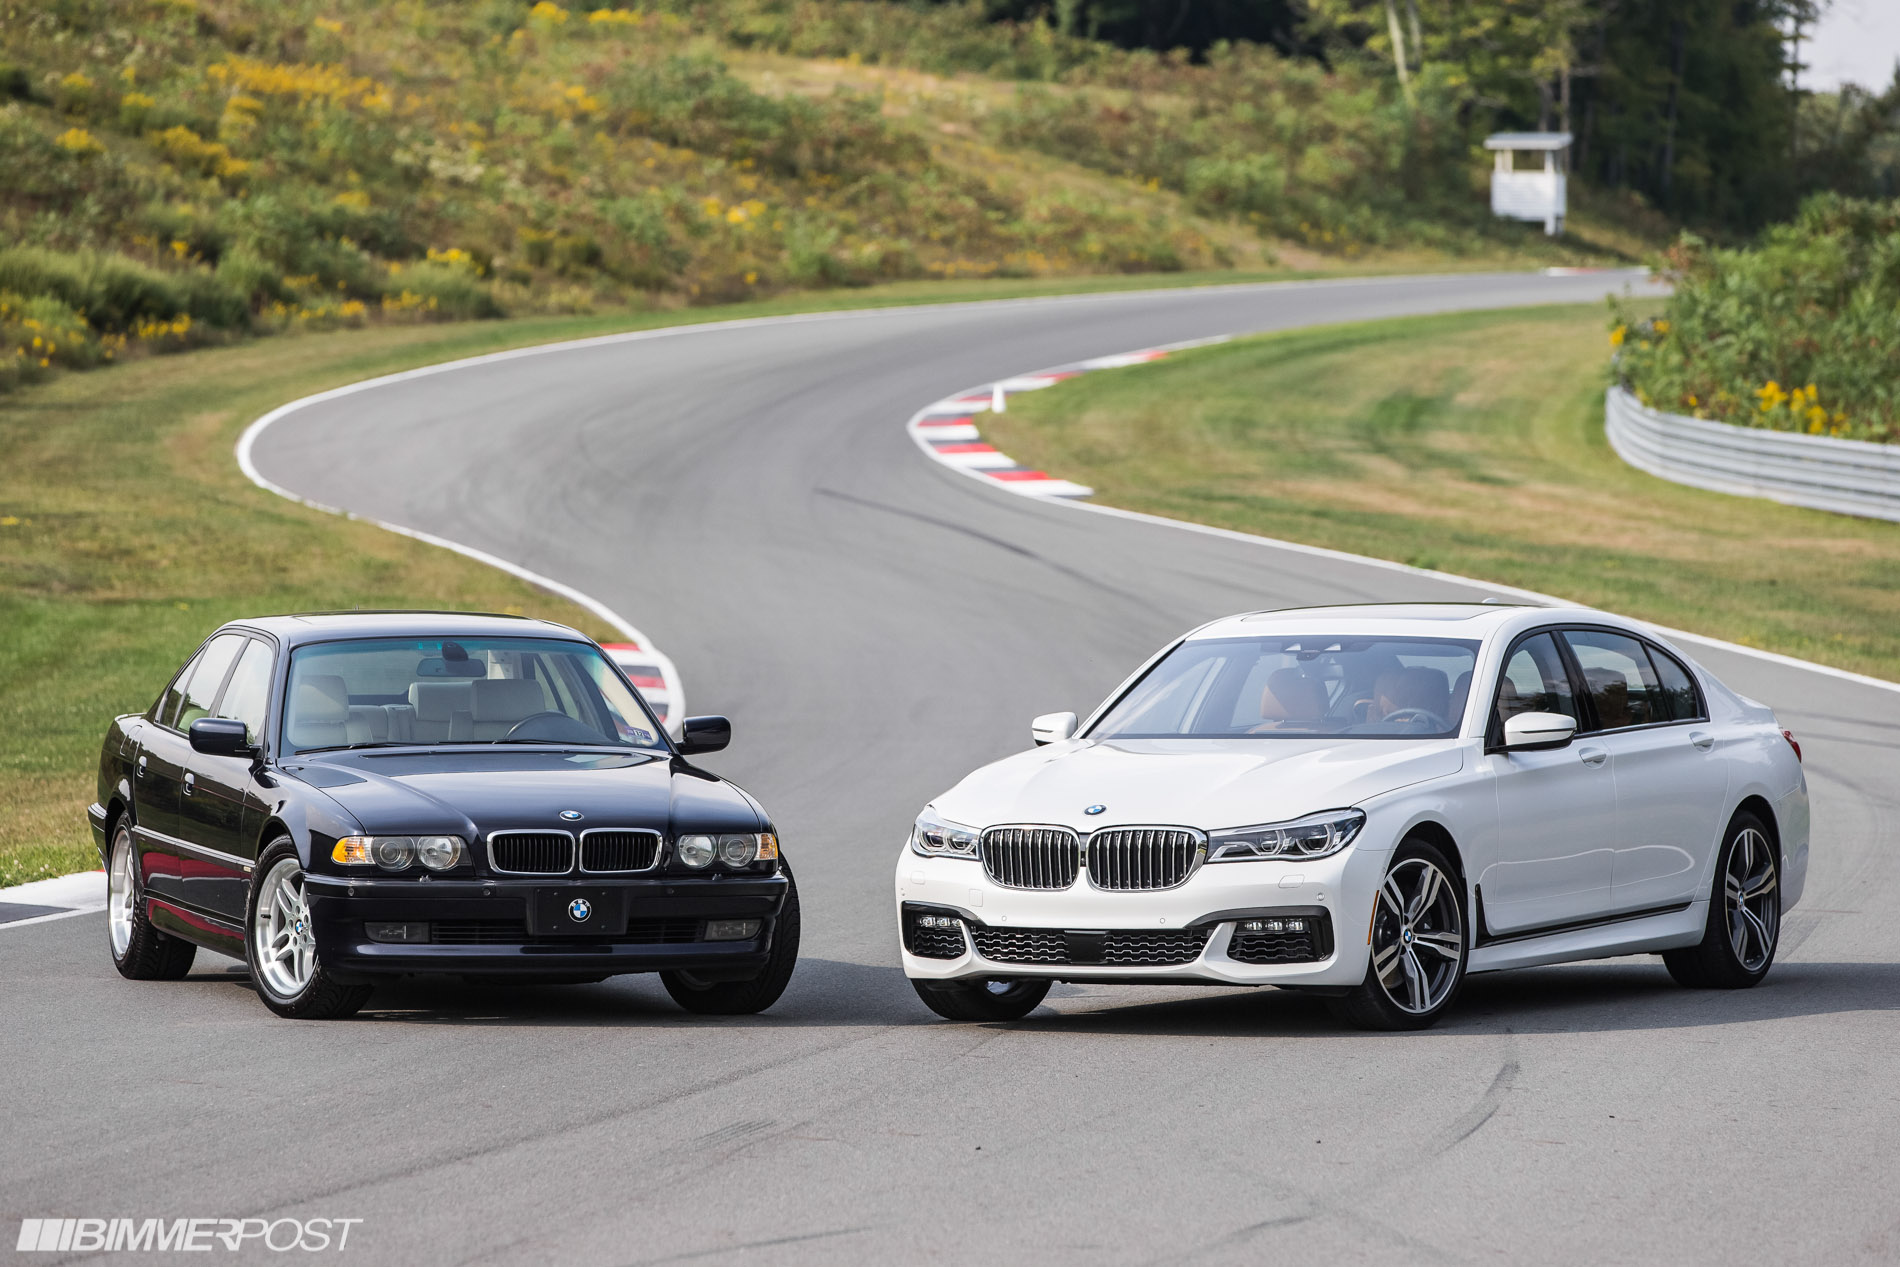 G11 G12 Bmw 7 Series Lineage Shoot